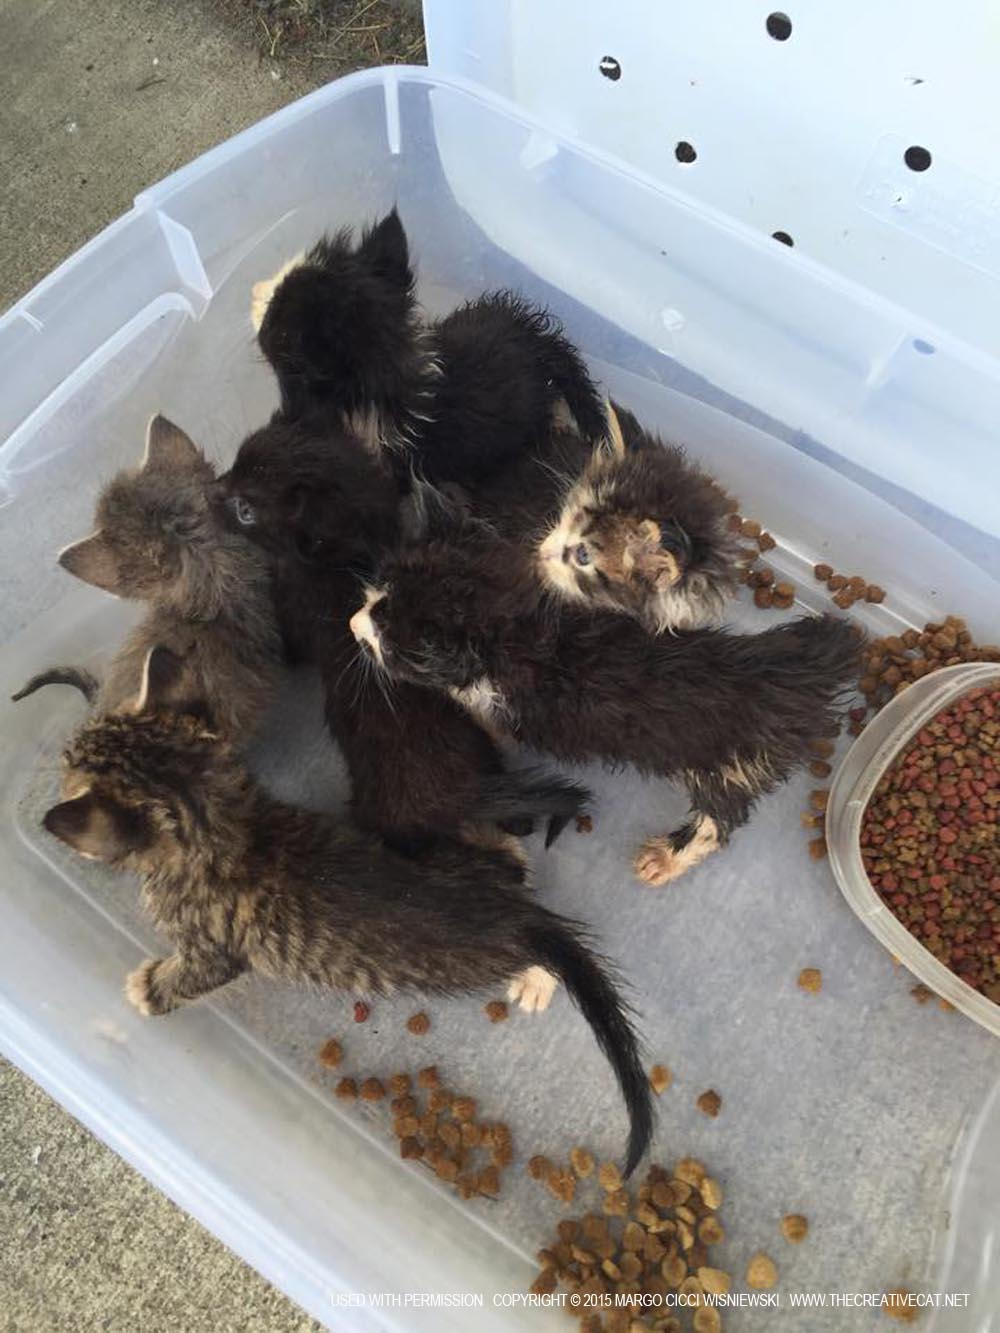 Kittens rescued from the hoarding situation.